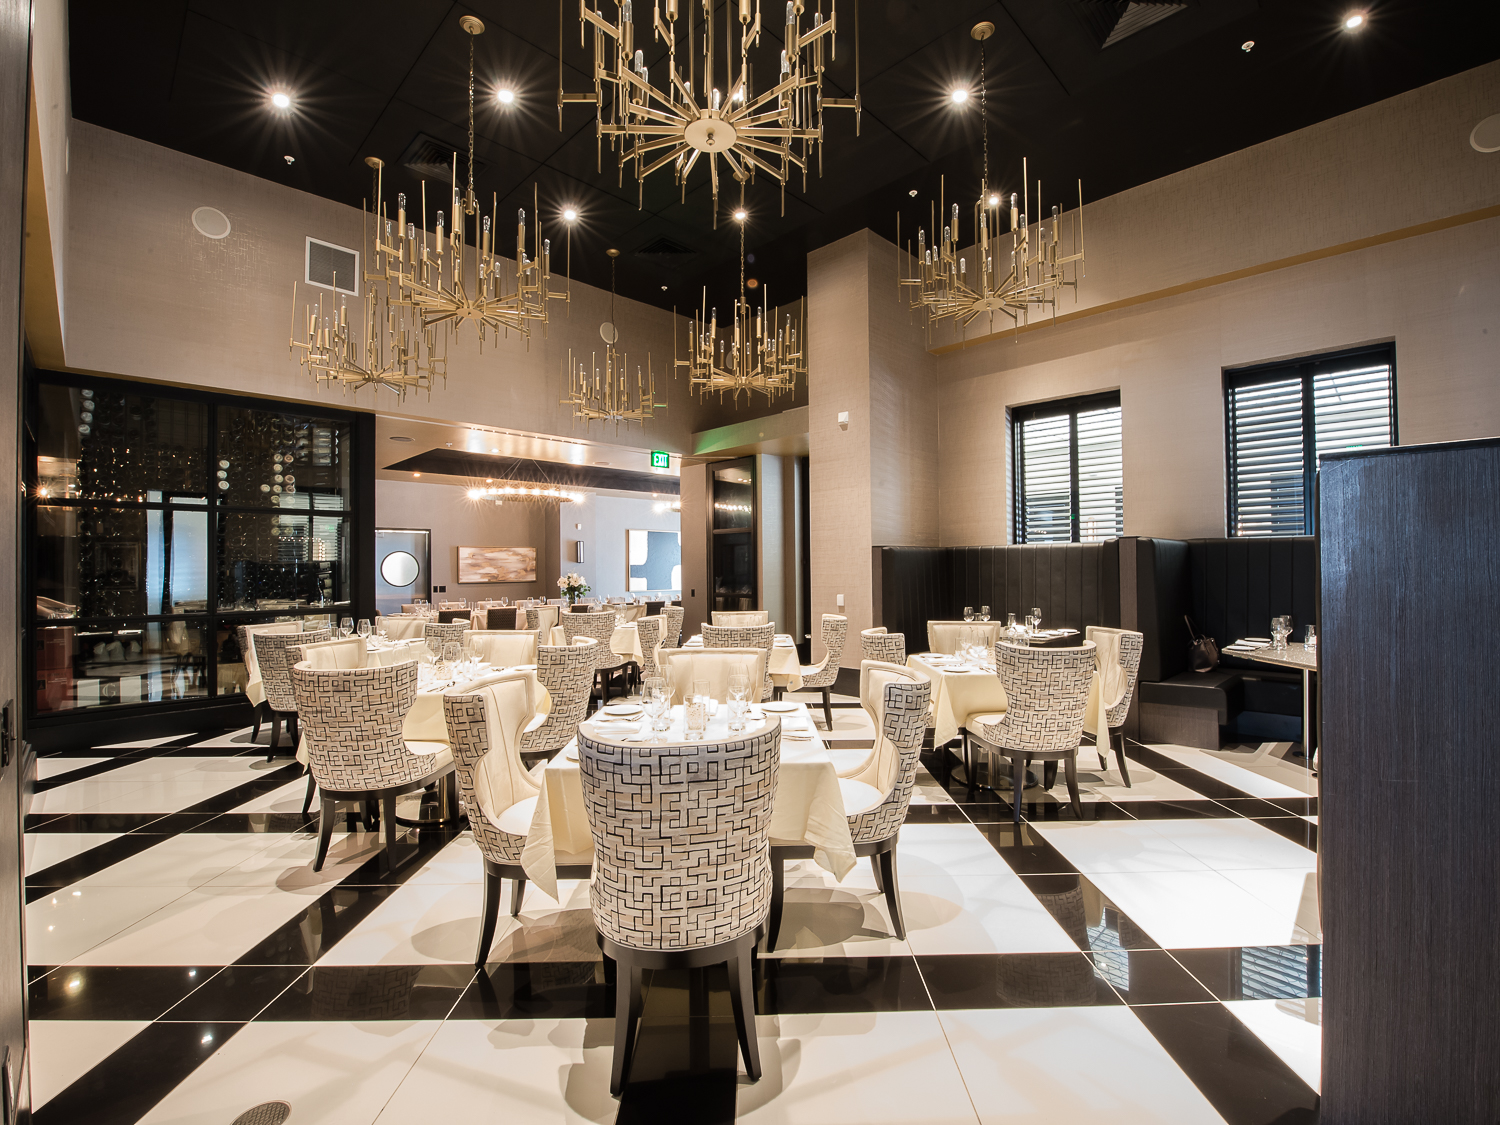 A Lot Of Love Went Into Designing This Posh Downtown Dining Room Where Old Meets New In Dish And Decor Order Seafood Steaks Or Housemade Pasta At